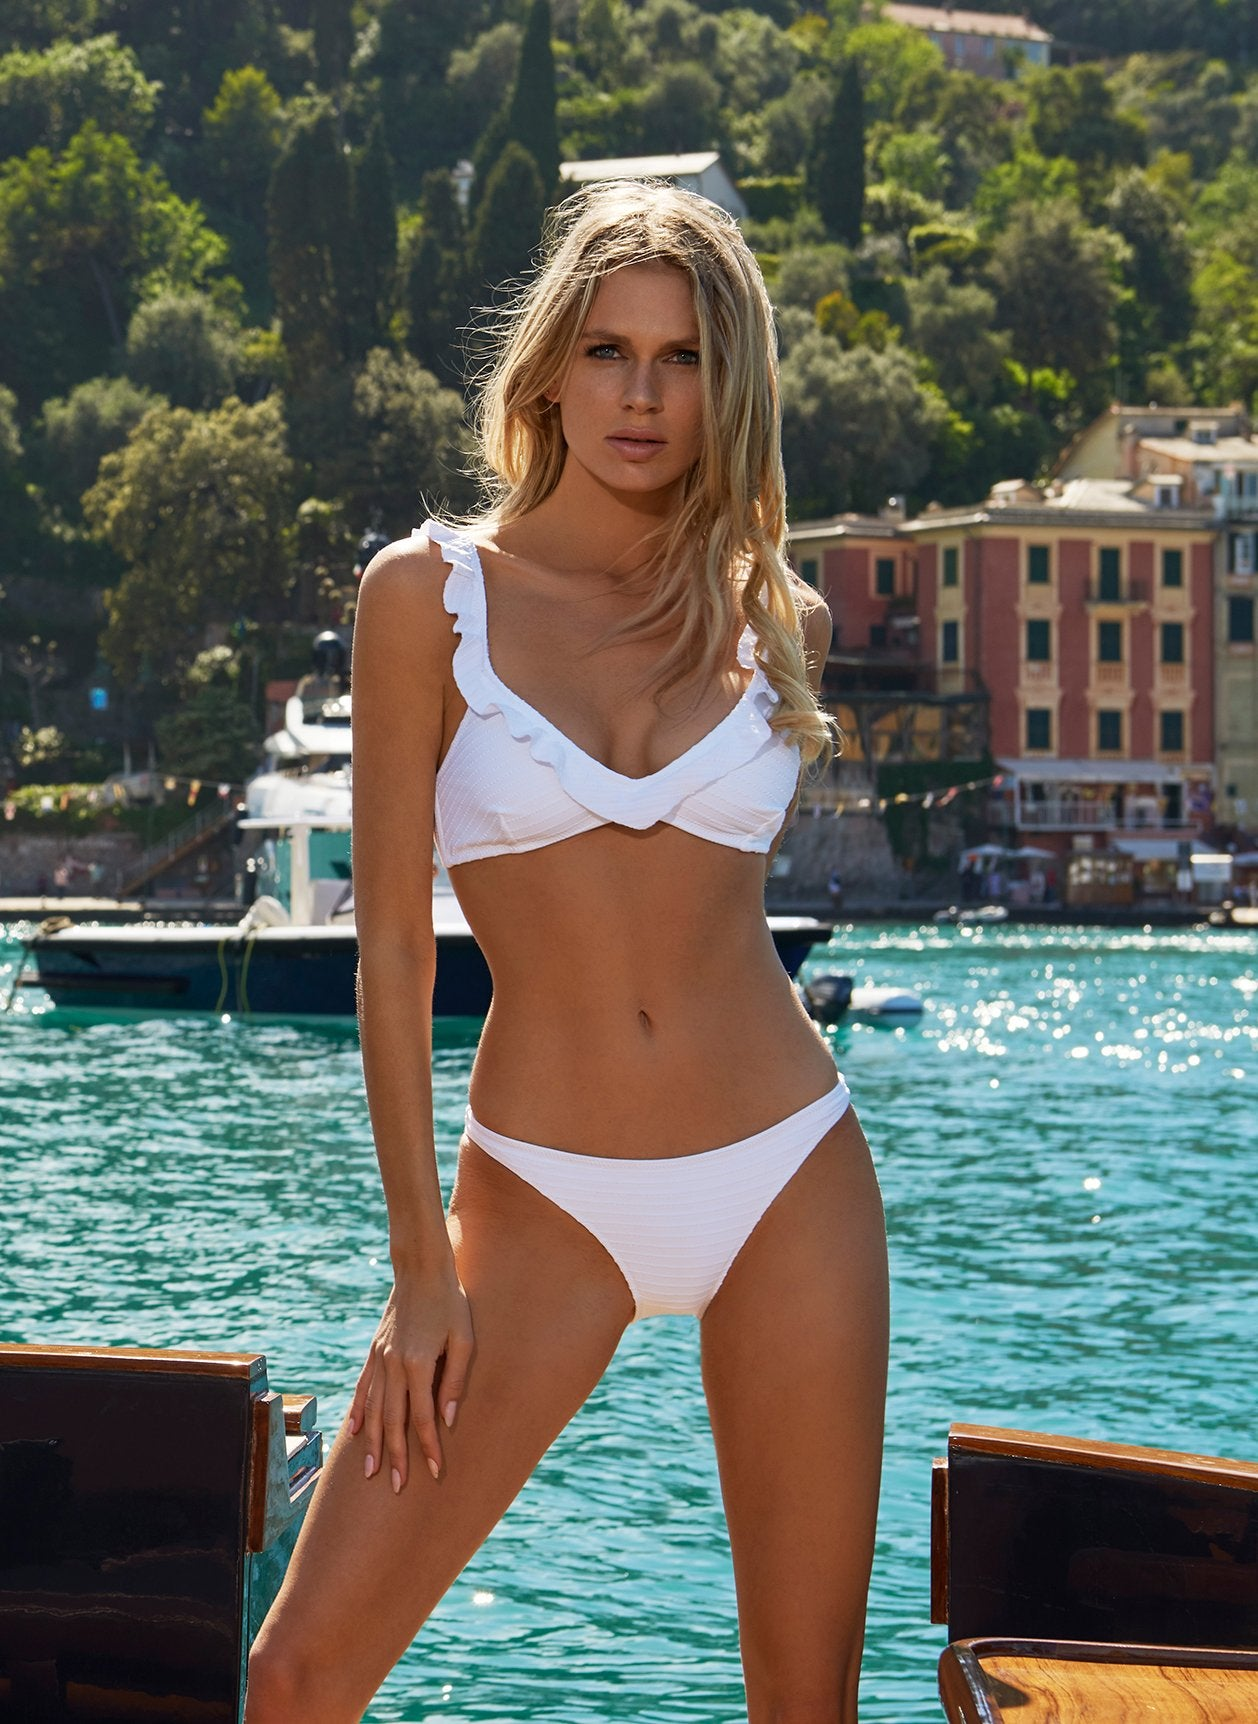 New York White Ribbed Frill Over The Shoulder Bralette Bikini 2020